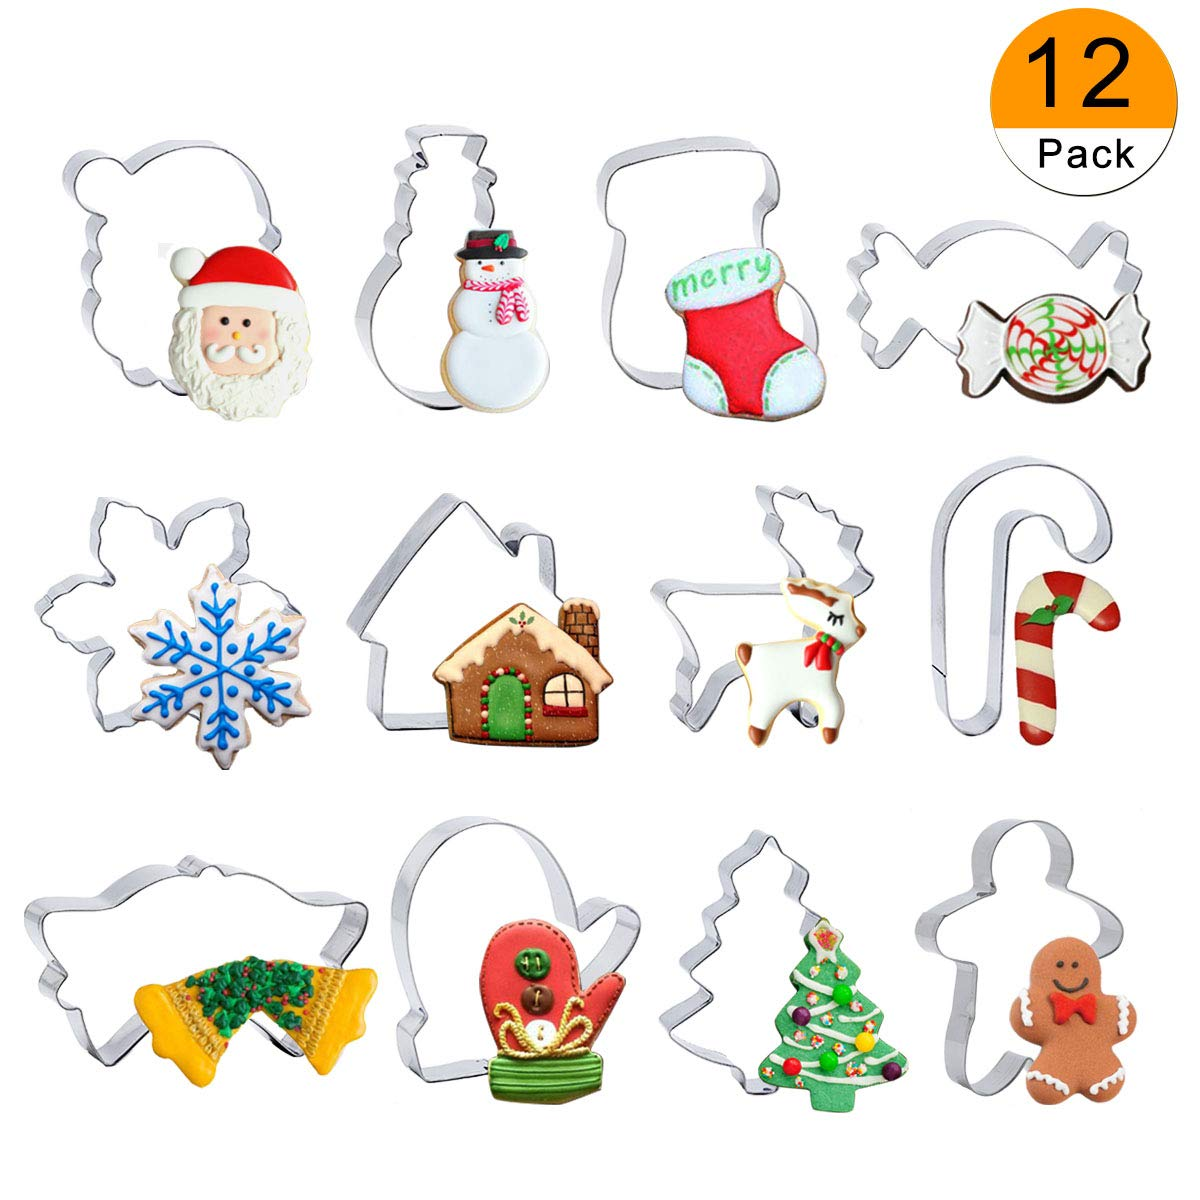 Christmas Cookie Cutter Set - 12 Piece Cutters Molds Include Snowflake, Reindeer, Gingerbread Men, Christmas Tree, Snowman, Santa etc